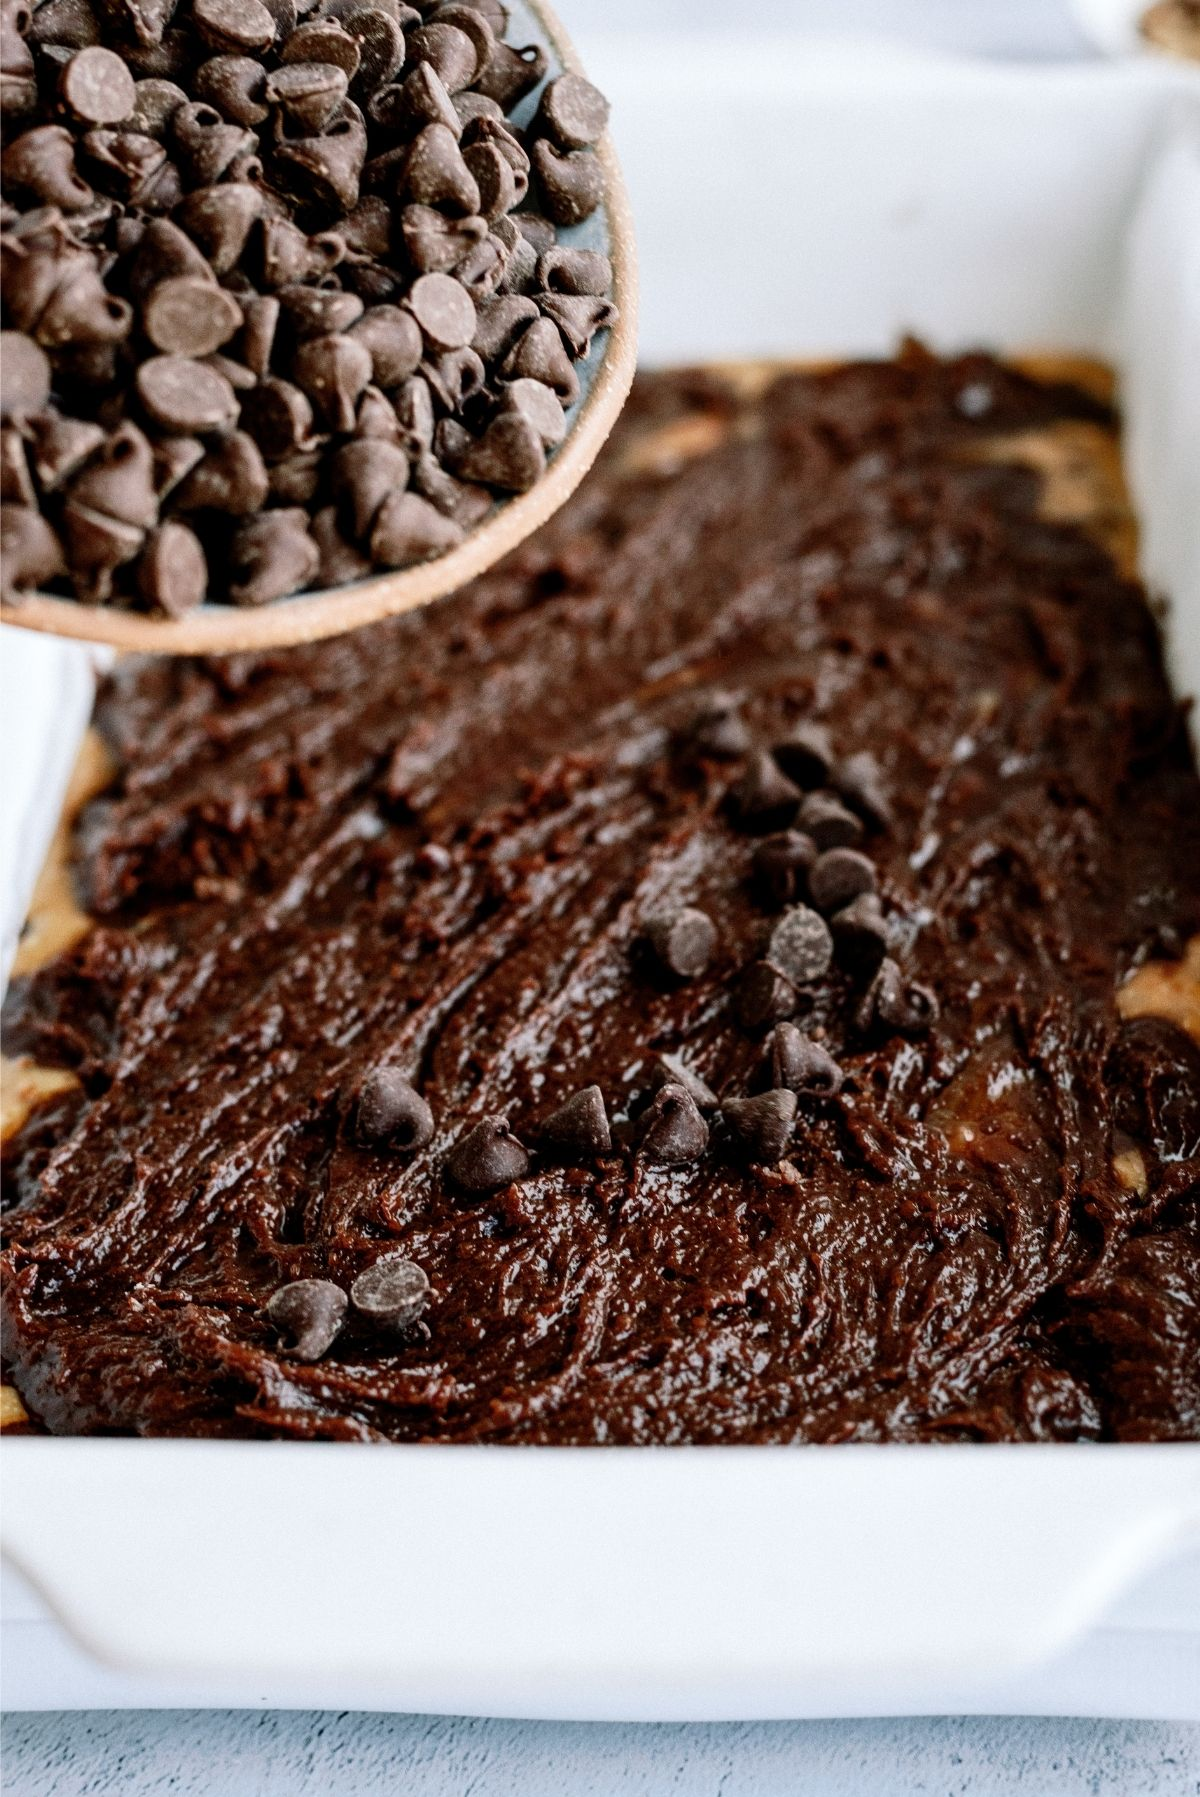 Sprinkle Chocolate Chips on top of top layer